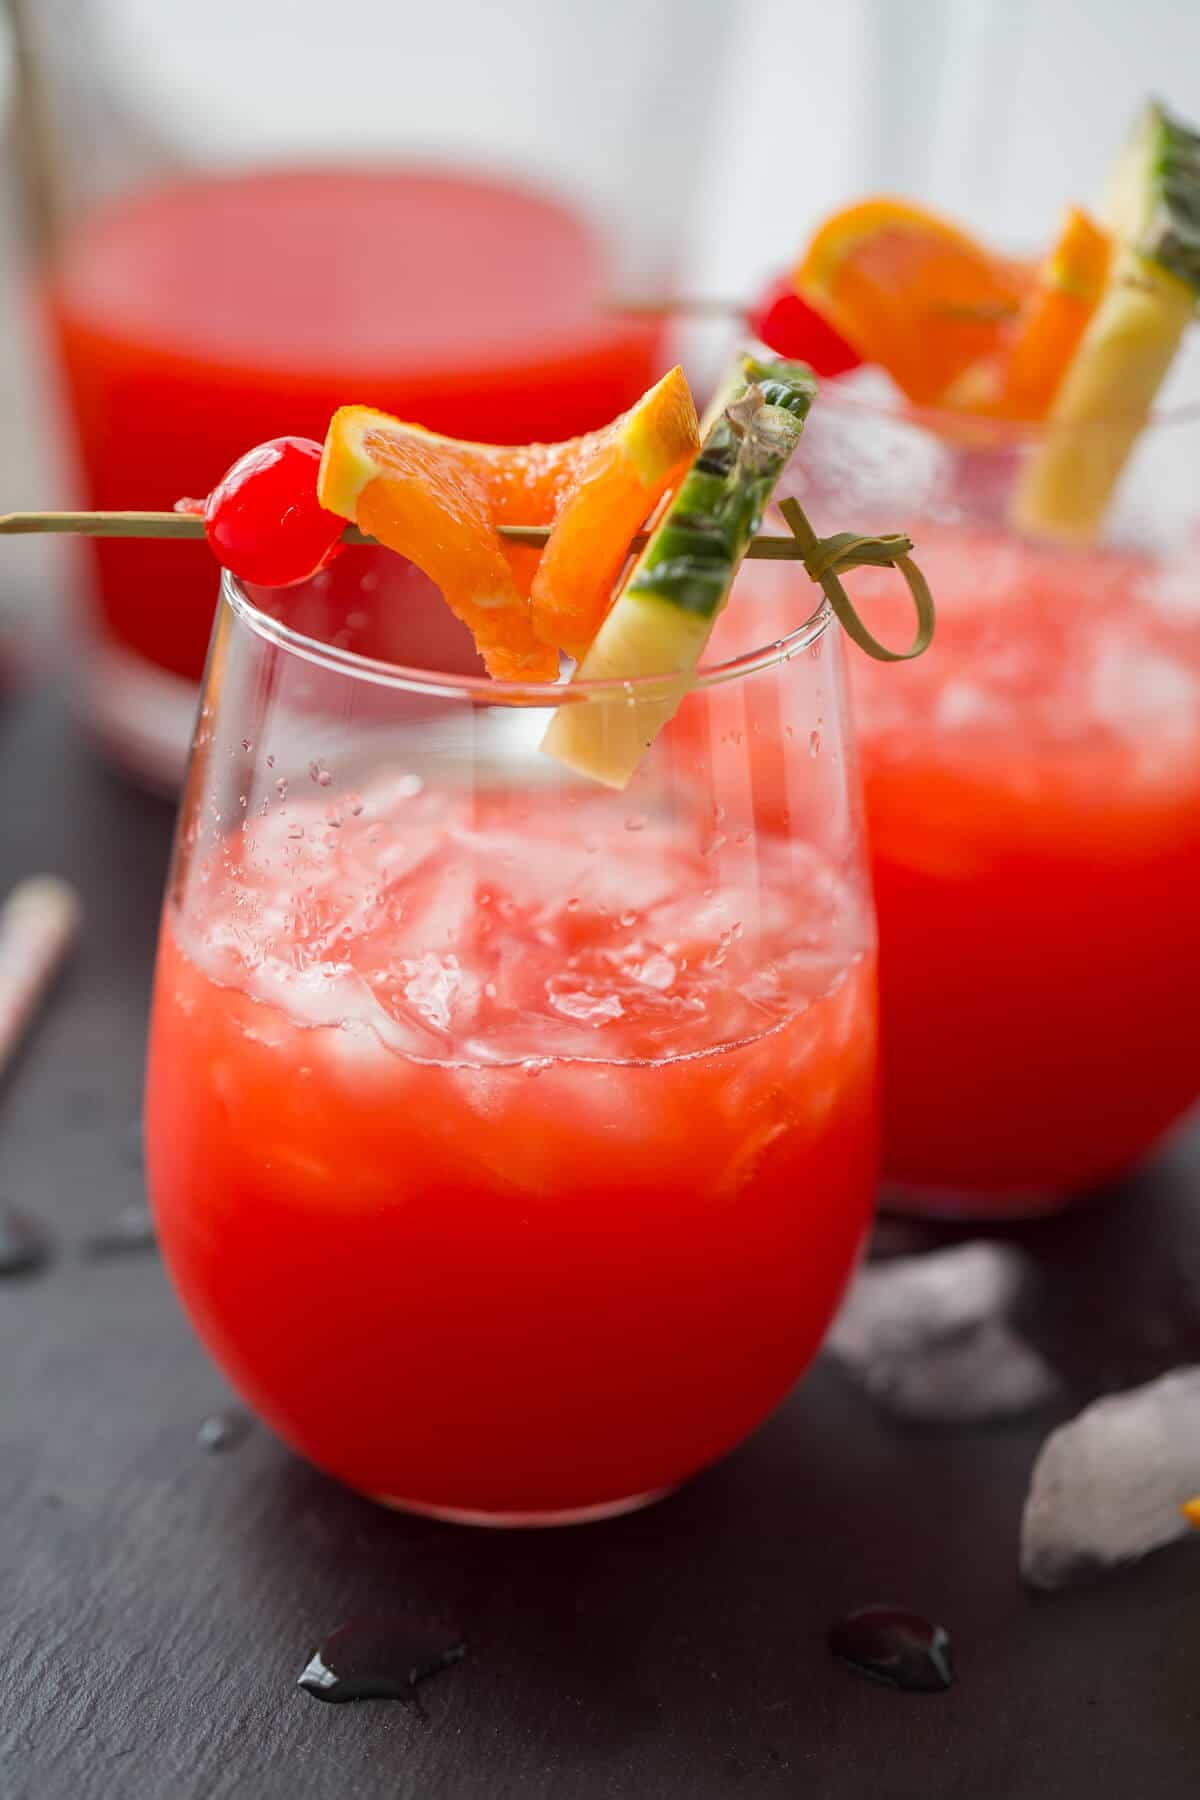 Rum punch Recipe - 1 cup of orange juice1 cup of pineapple juice1/4 cup lime juice1/4 cup rum1/4 cup dark rum1/2 cup of grenadineIn a pitcher, combine the juices, the rum, and the grenadine. Stir. Pour into ice-filled glasses and serve with an orange slice and maraschino cherries. Enjoy responsibly!